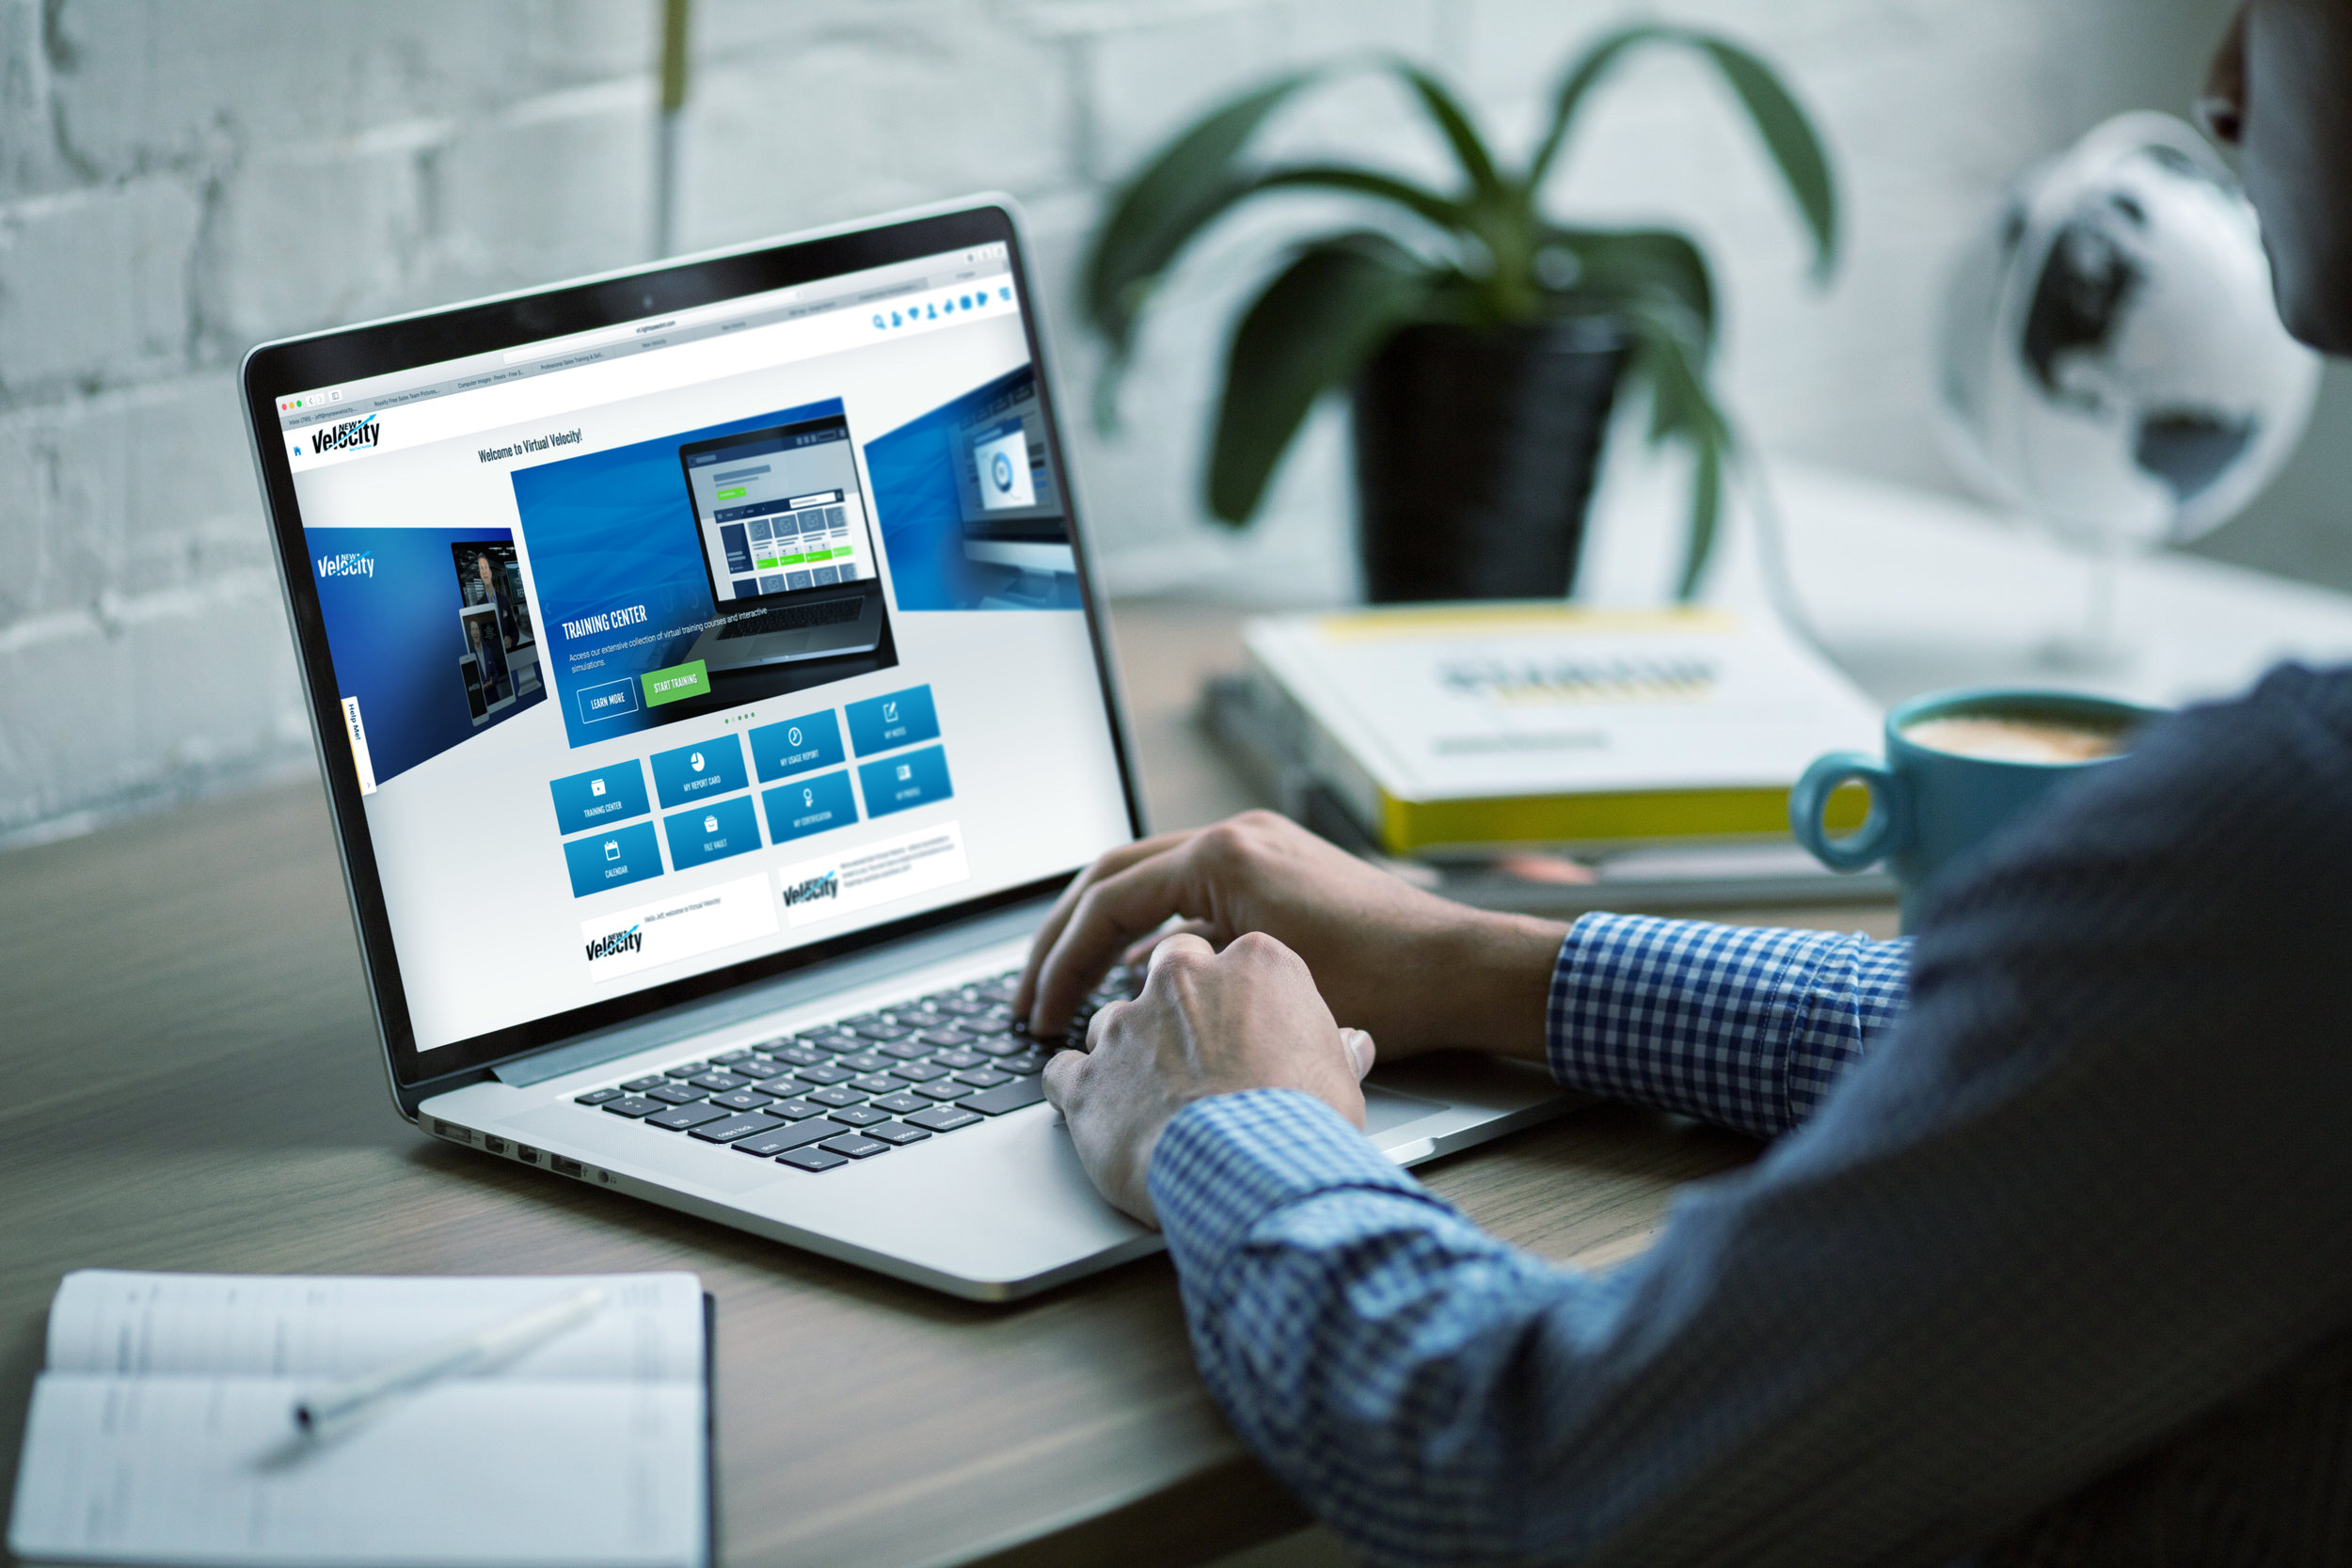 For Individuals - Learn how you want, when you want. New Velocity's award-winning online training platform is specifically-designed for today's sales professionals looking to beat their number.